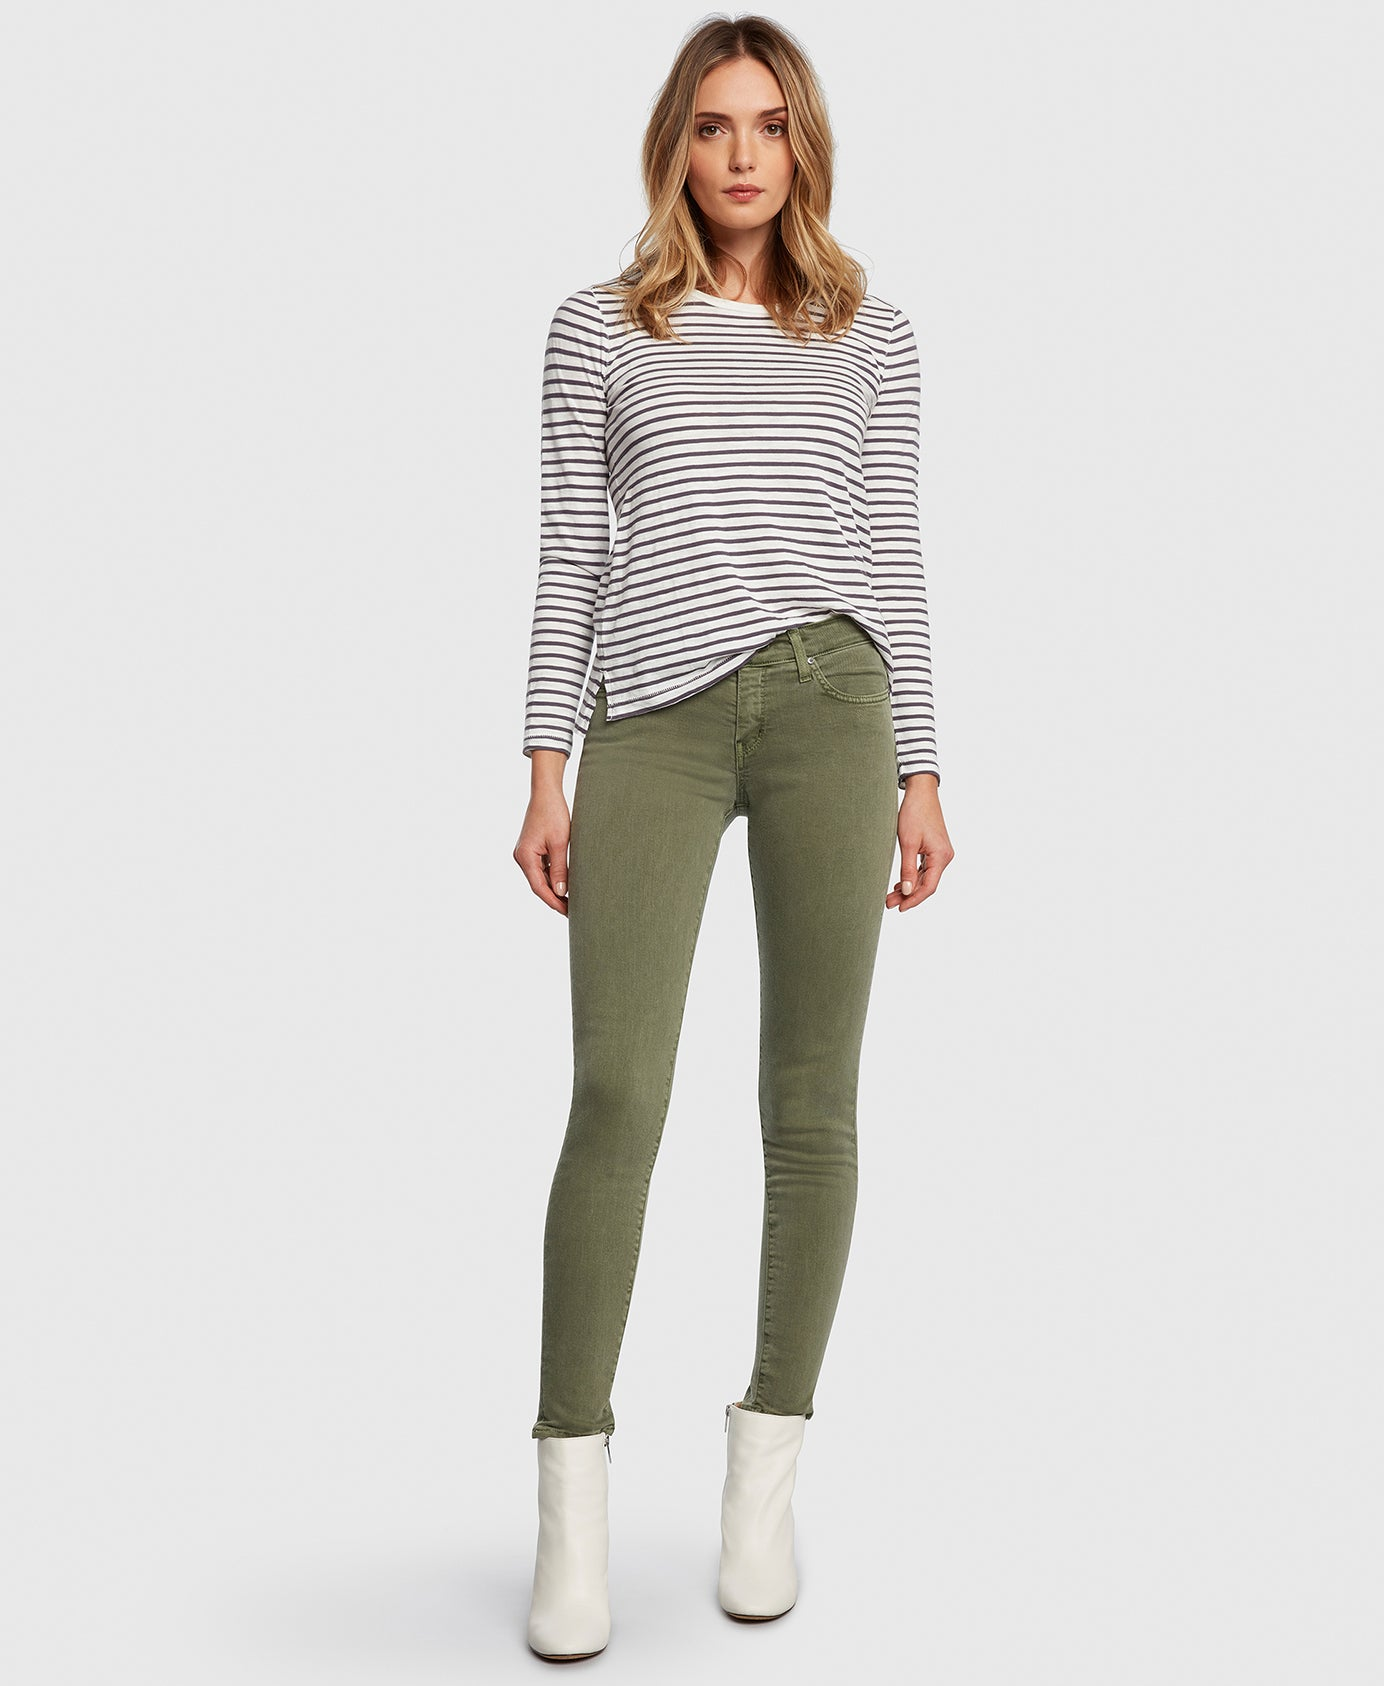 Principle Women's Jeans DREAMER in Eden green twill